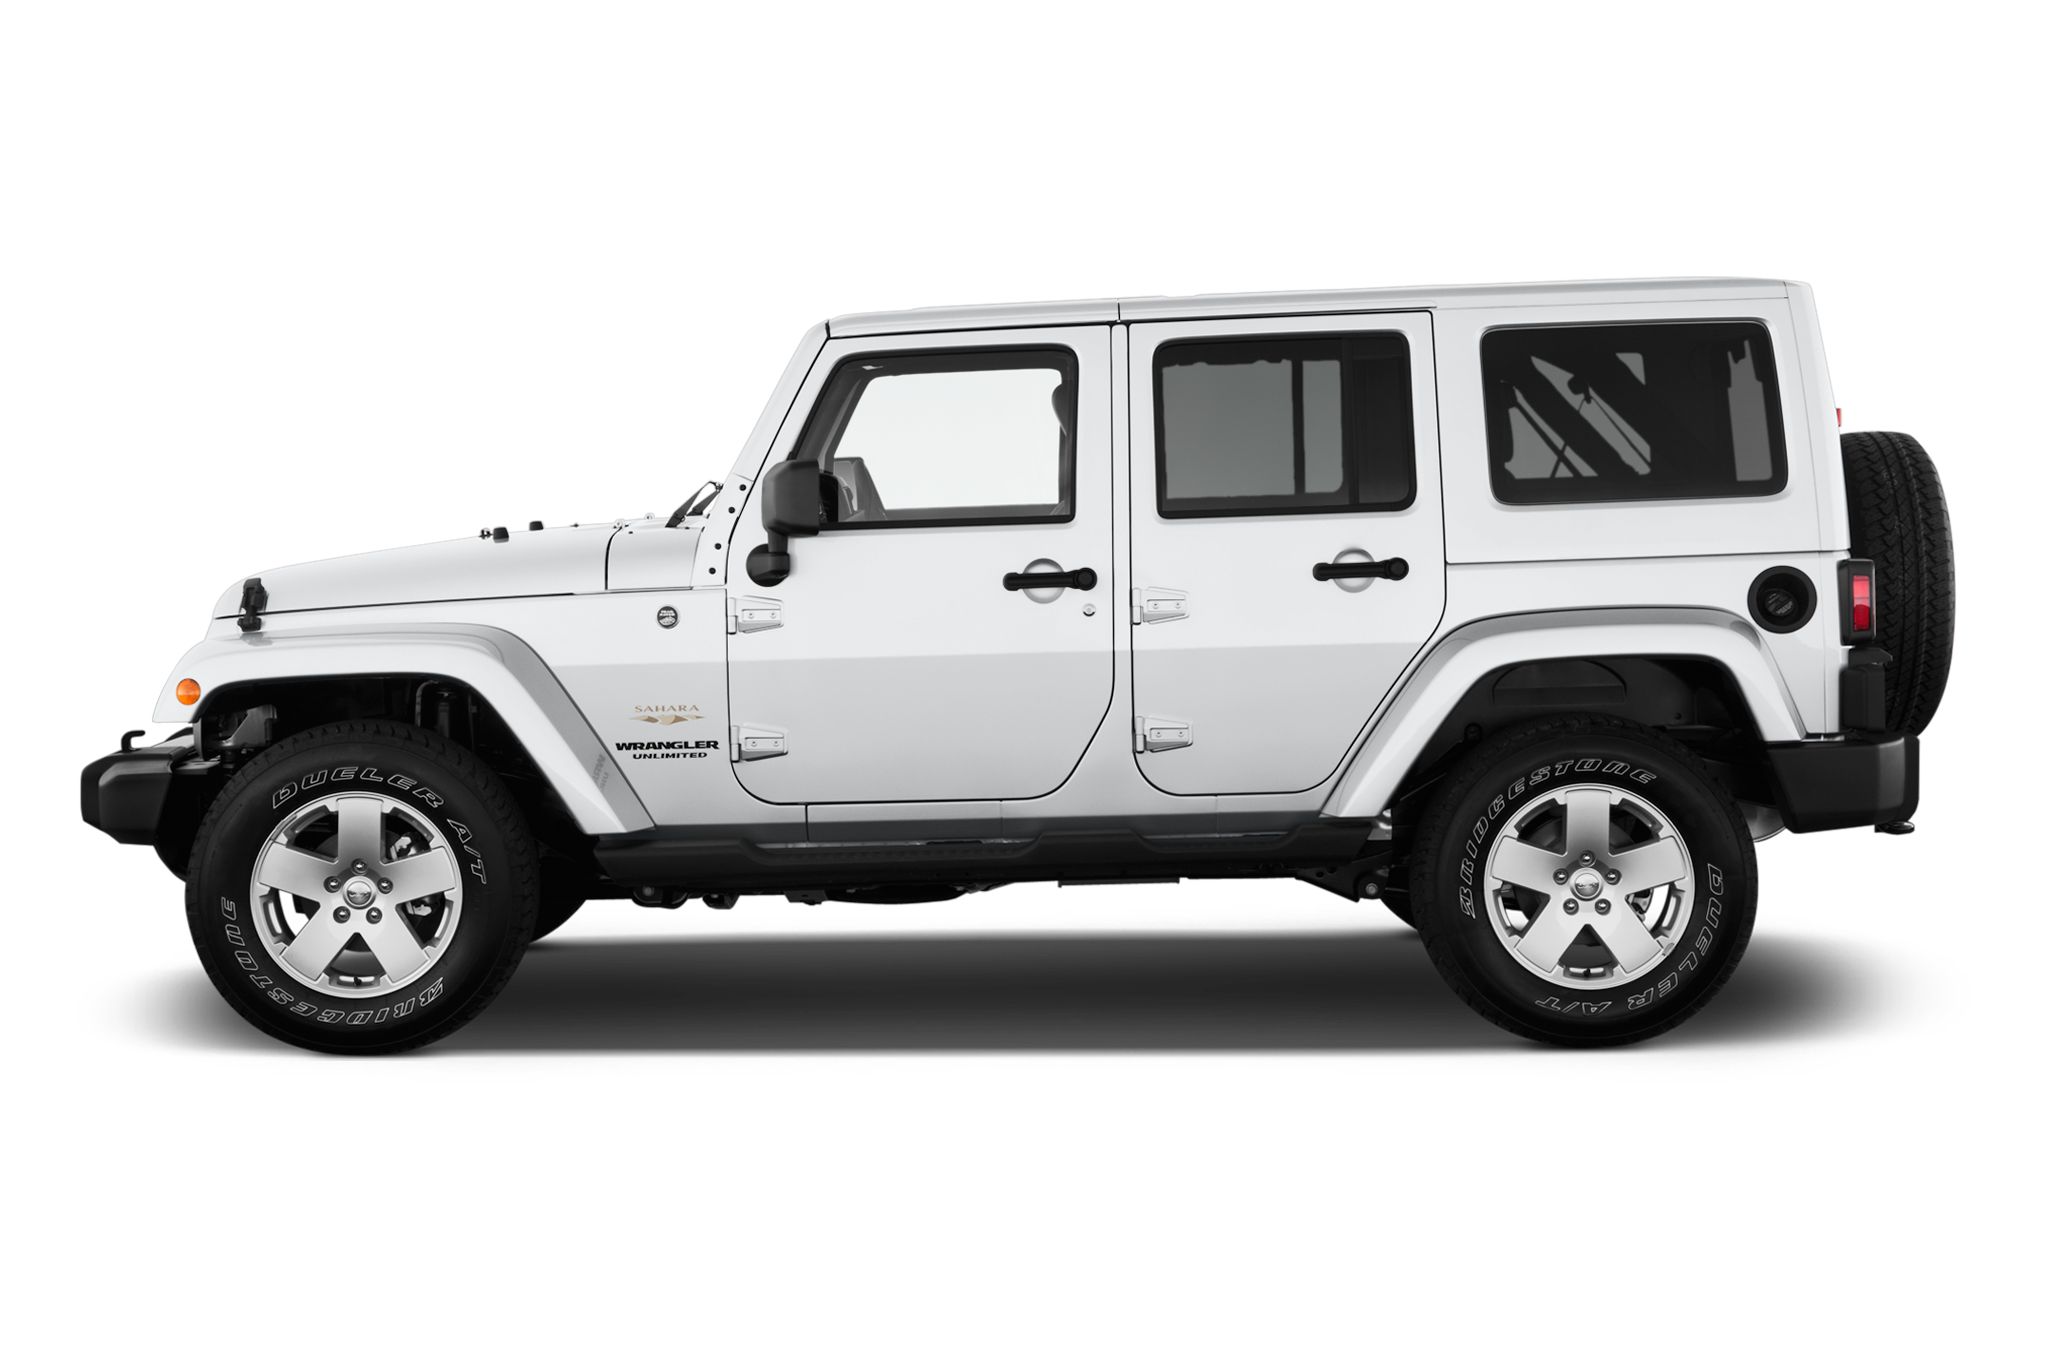 2012 jeep wrangler unlimited altitude edition - editors ... jeep wrangler side view 2012 jeep wrangler headlight wiring diagram #5